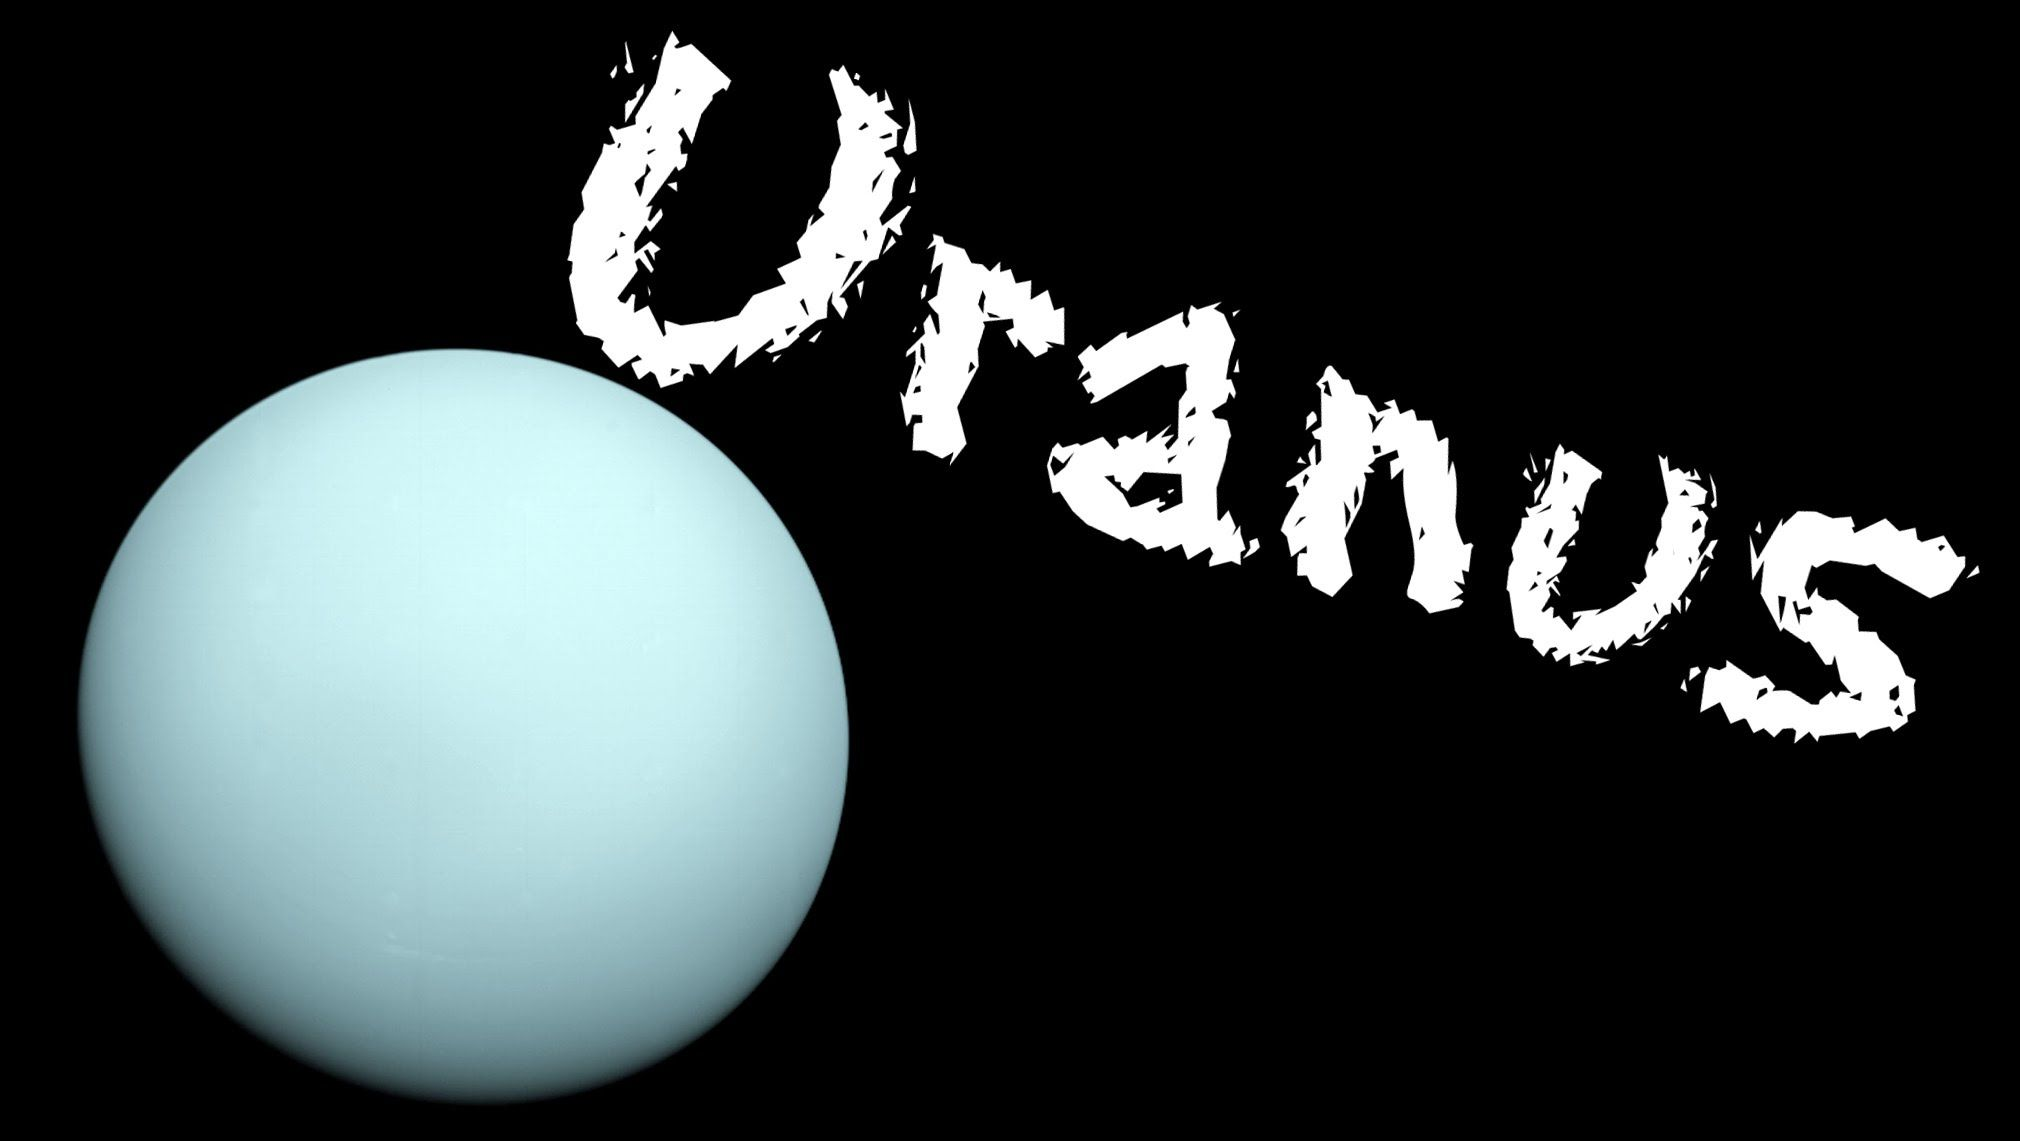 All About Urfor Kids Astronomy And Space For